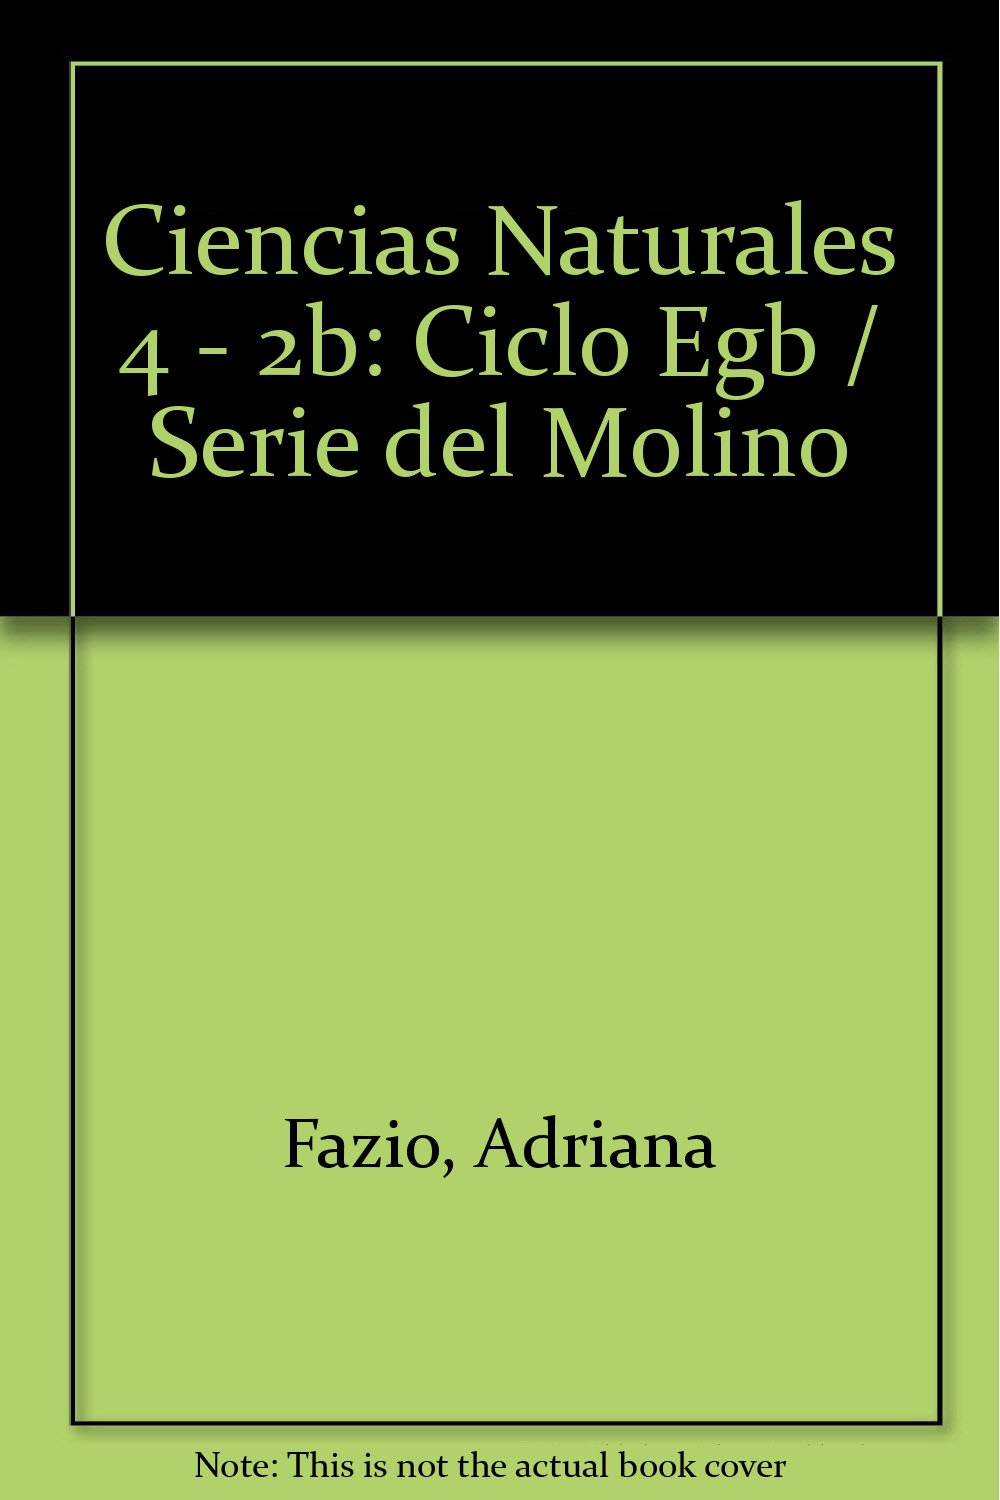 Download Ciencias Naturales 4 - 2b: Ciclo Egb / Serie del Molino (Spanish Edition) pdf